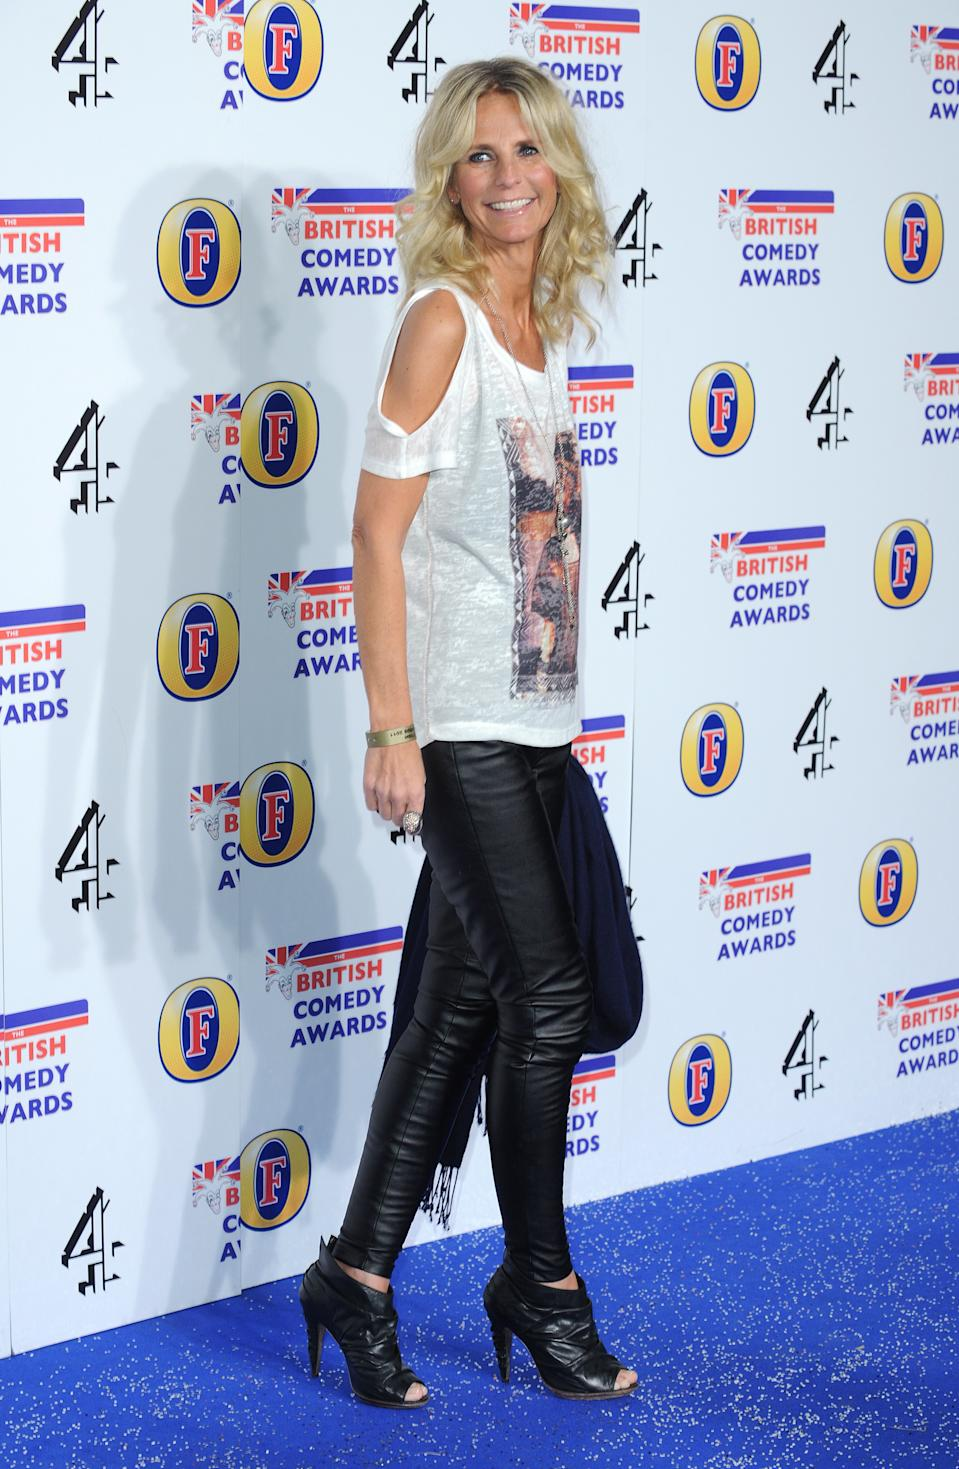 Ulrika Jonsson arriving at The British Comedy Awards 2011, Fountain Studios, Wembley, London.